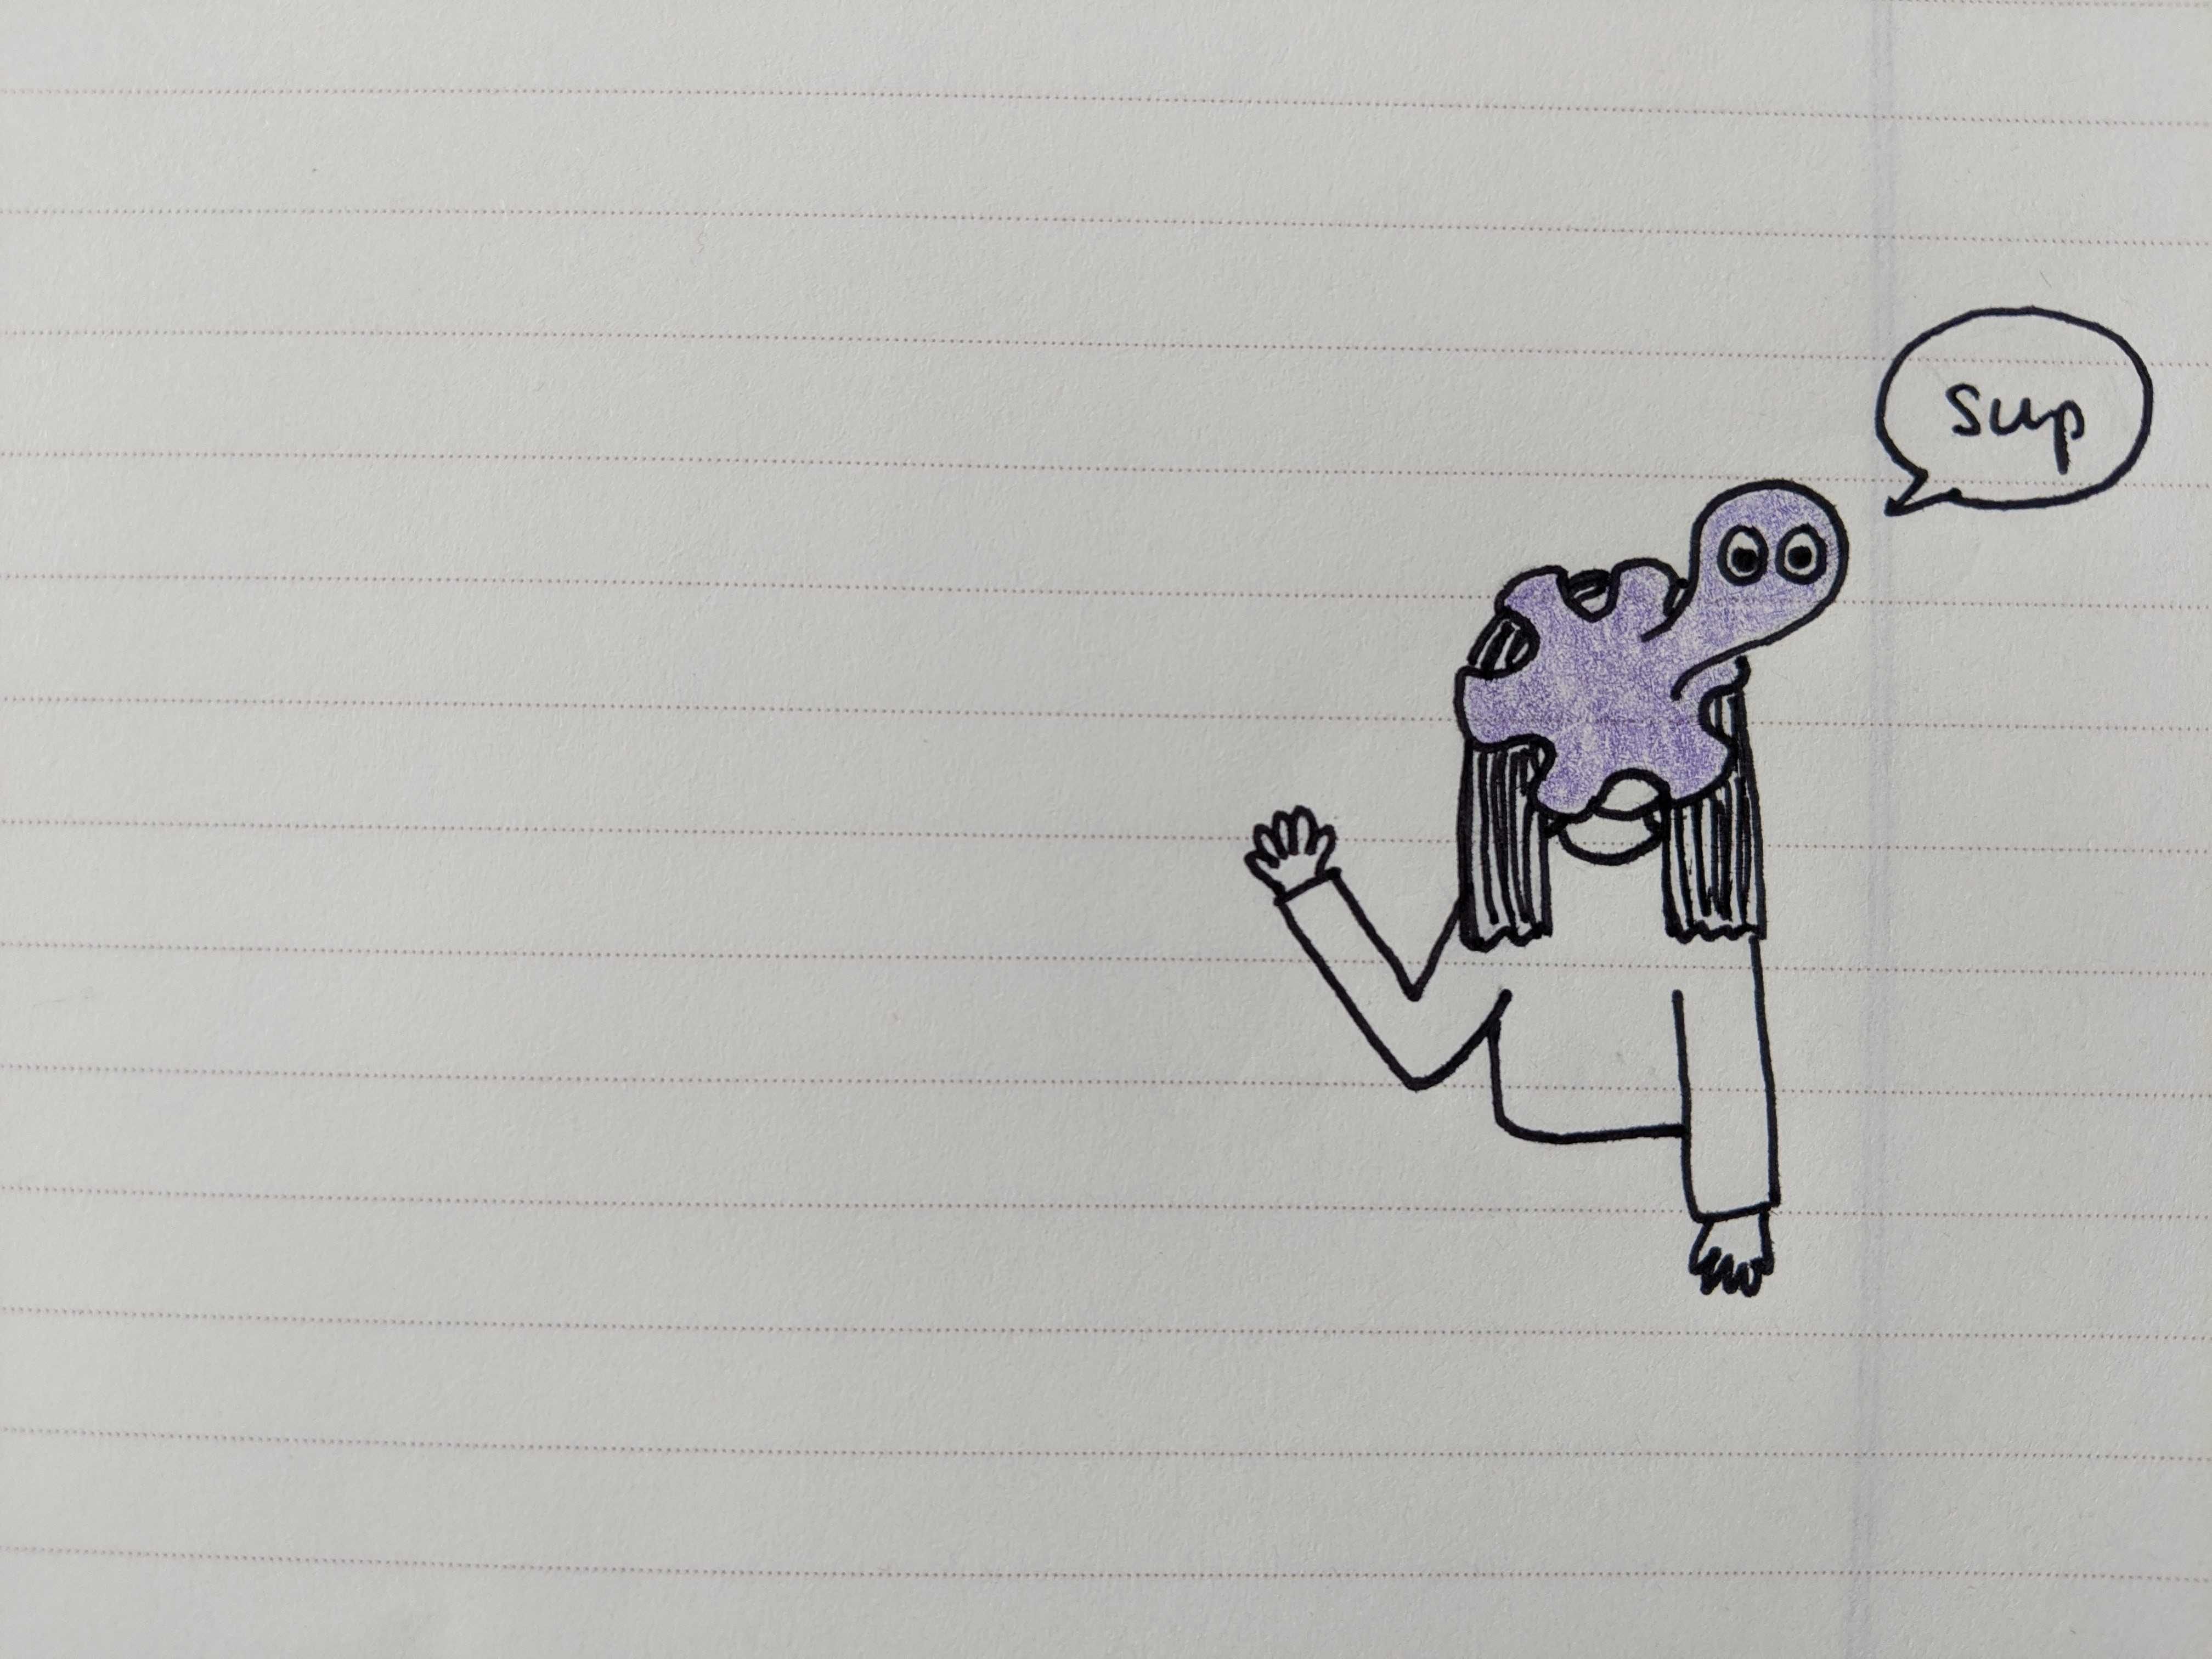 A doodle of an octopus attached to a face